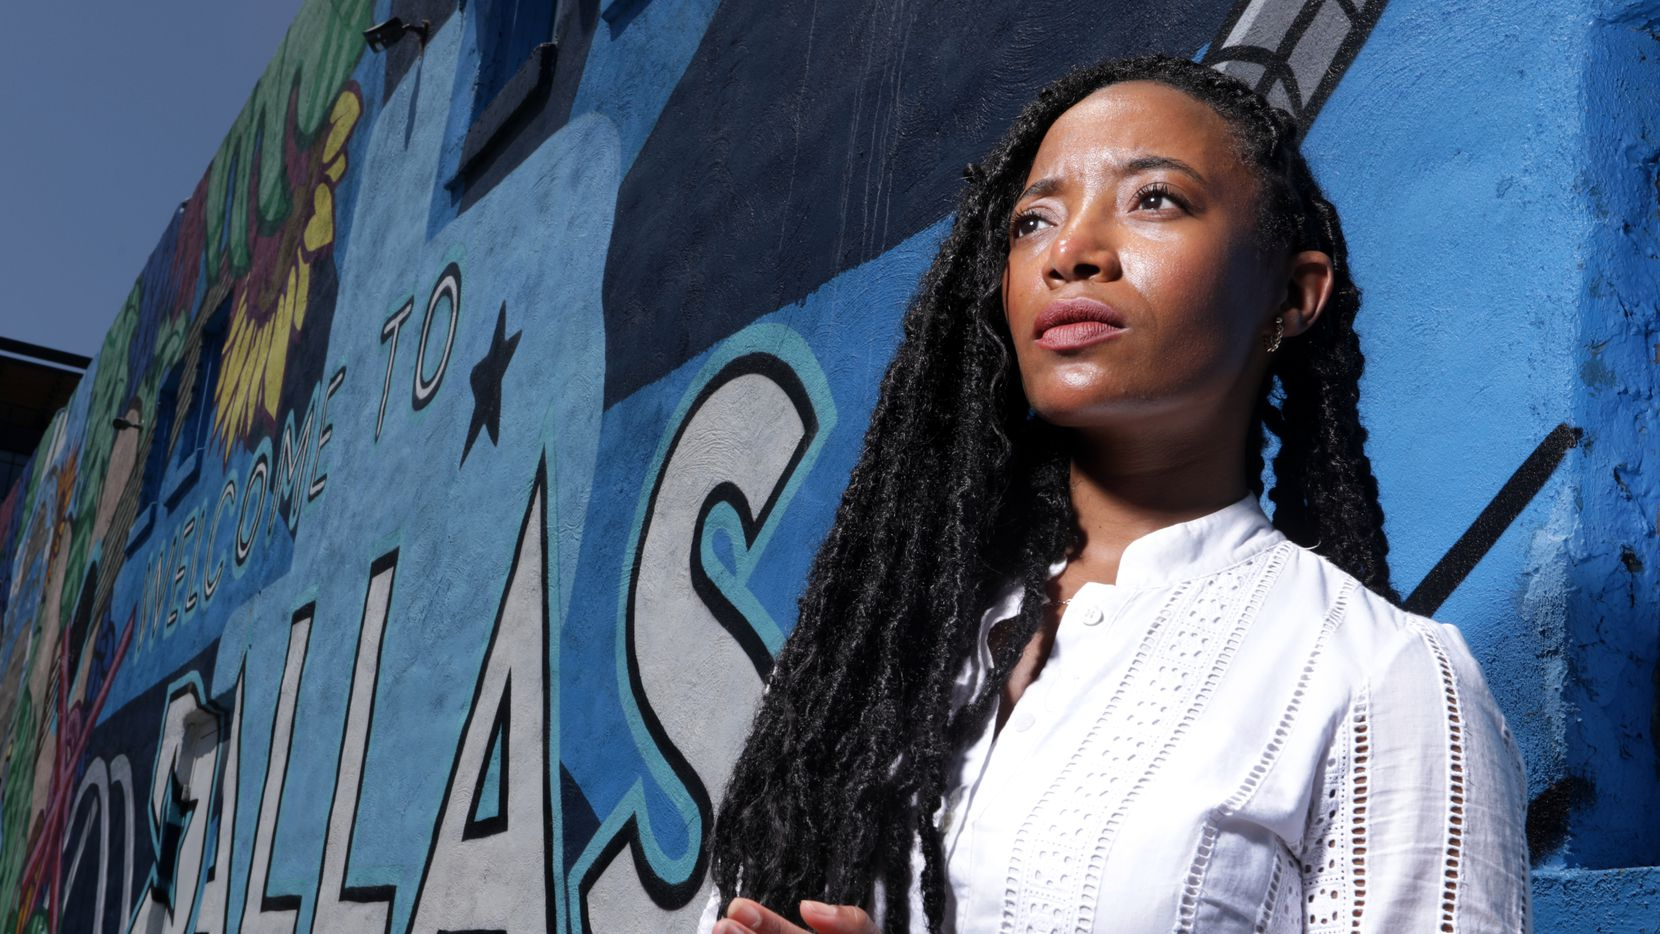 Amber Sims in Deep Ellum near her Young Leaders, Strong City co-working office space. The organization, which Sims co-founded, provides opportunities for high school students to talk about race and identity issues.